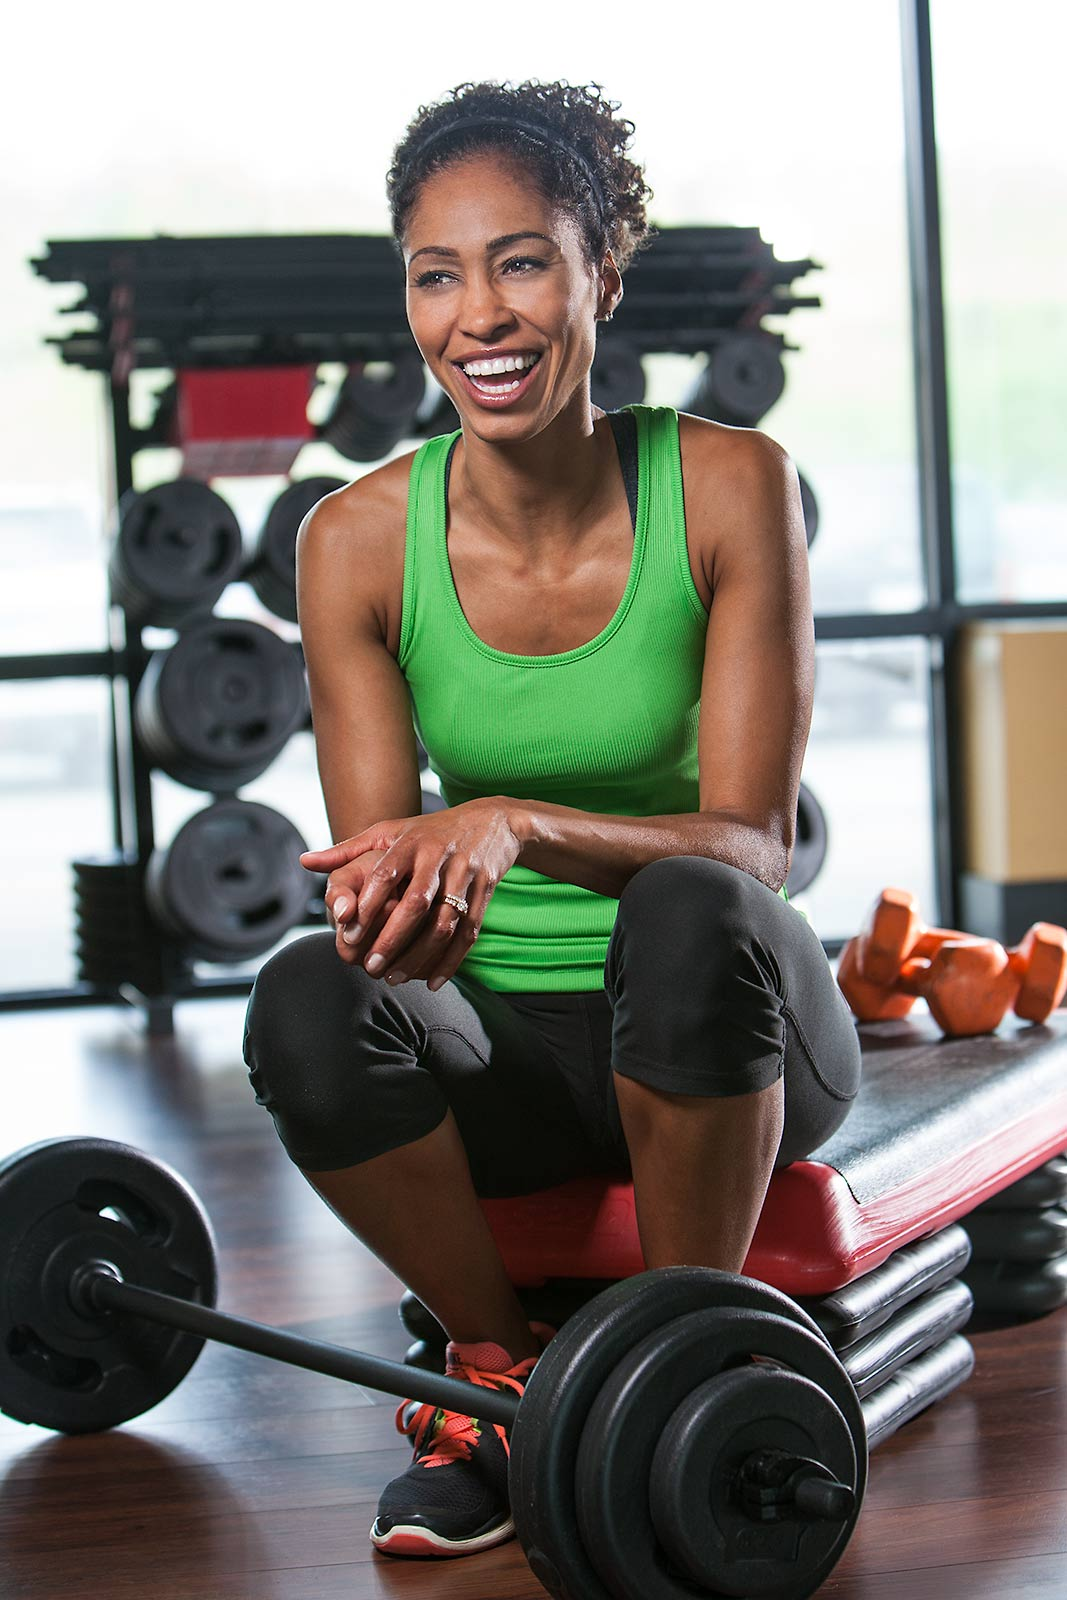 Smiling energetic portrait of ESPN on air talent Sage Steele in Connecticut gym